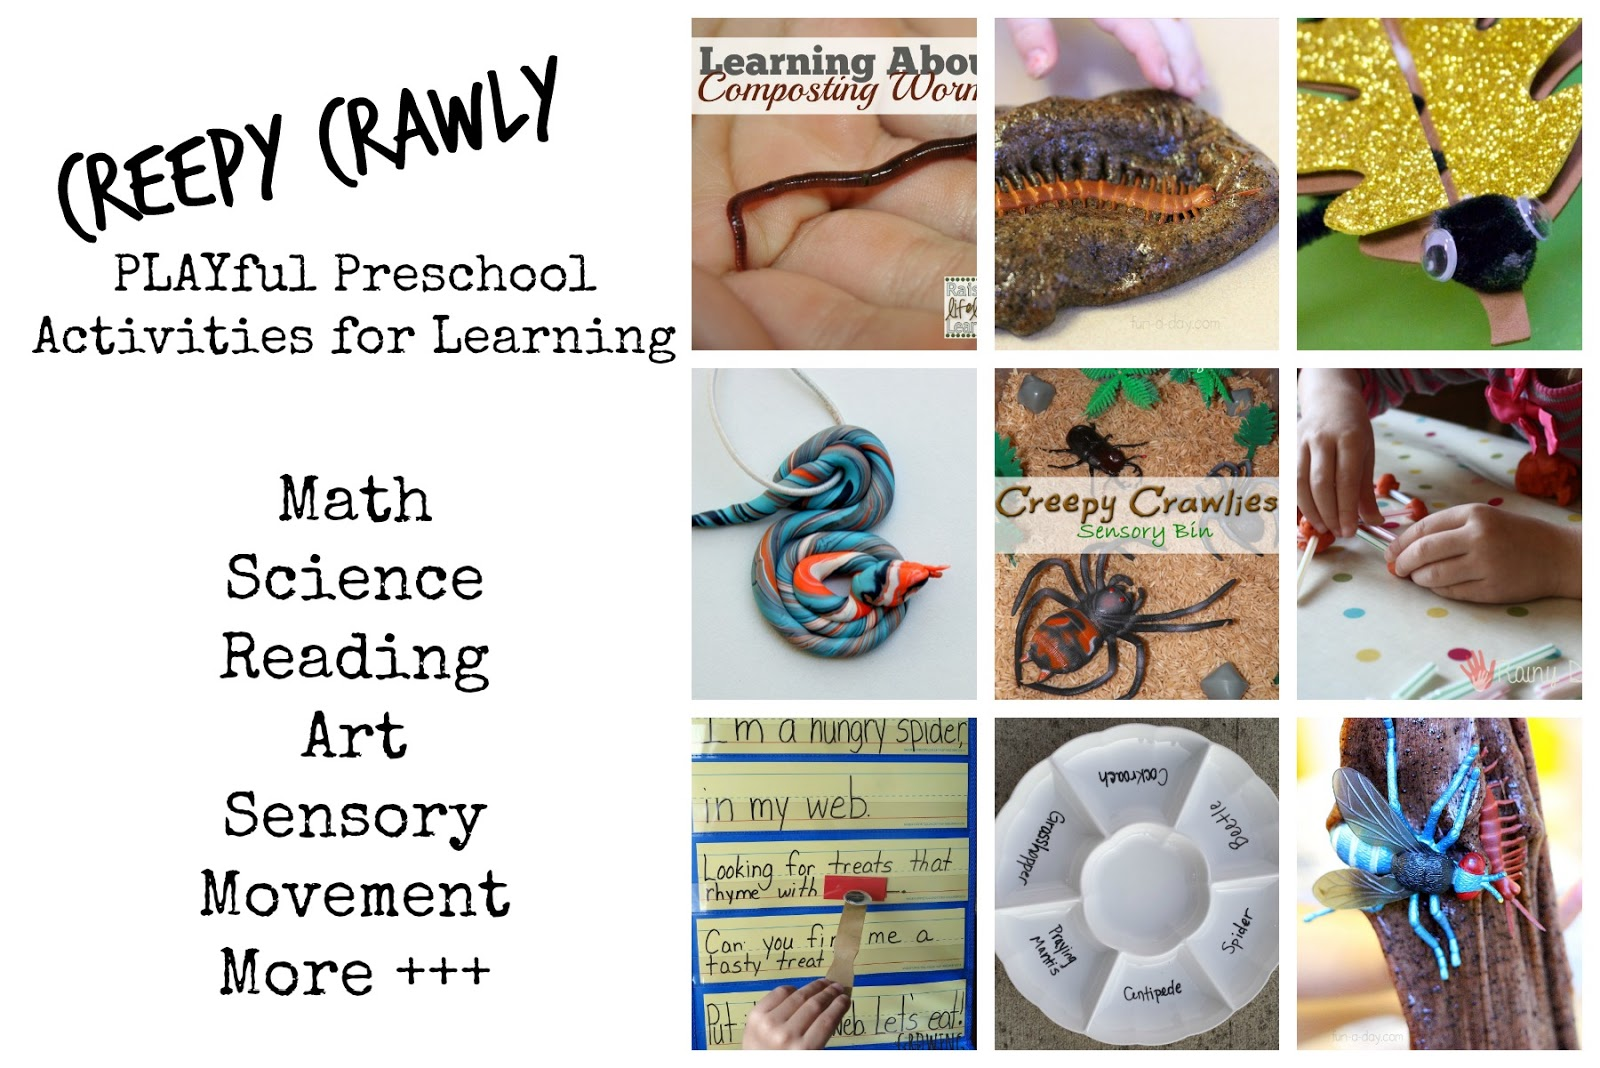 Creepy Crawly Playful Preschool Weekly Lesson Plan